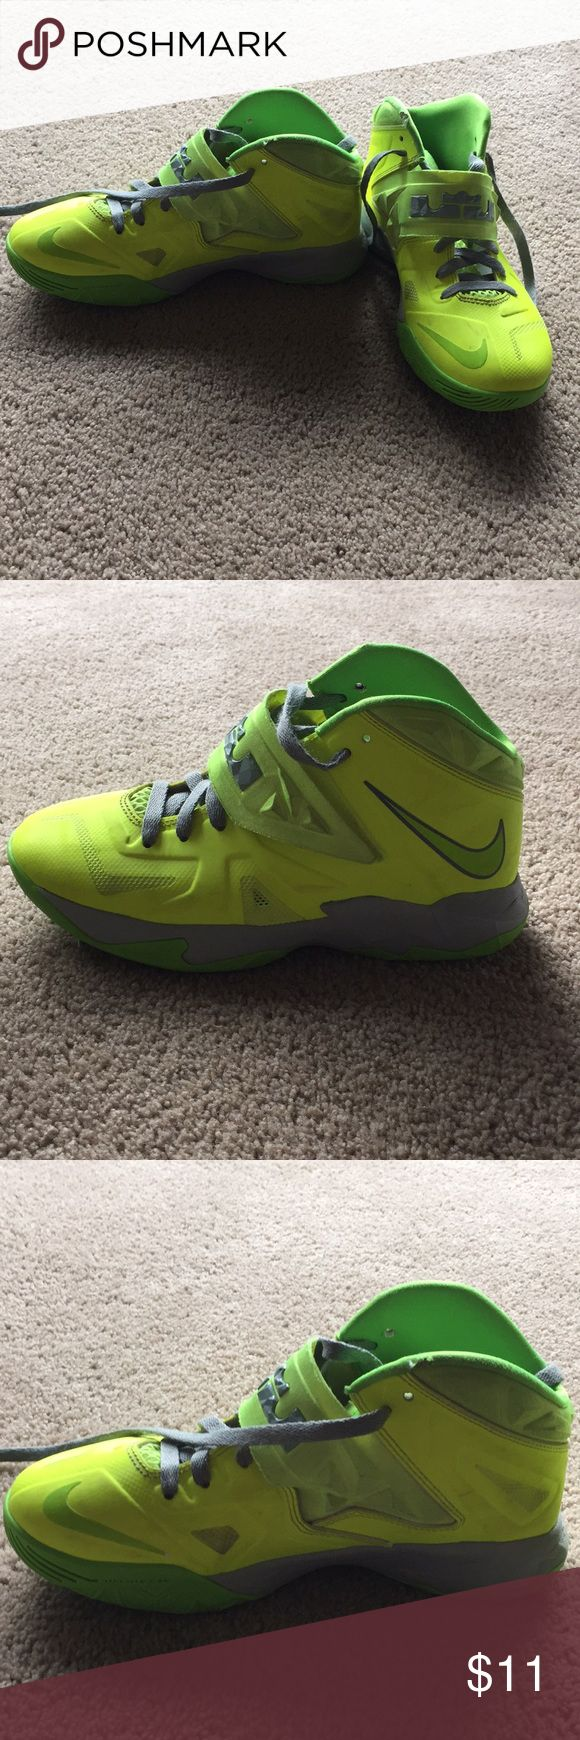 Boys Nike Size 6Y Boys Nike Size 6Y Bottom of the sneakers in good condition One small rip on each sneaker all the way on the top by the top edge where the laces go , see picture Shoes Sneakers